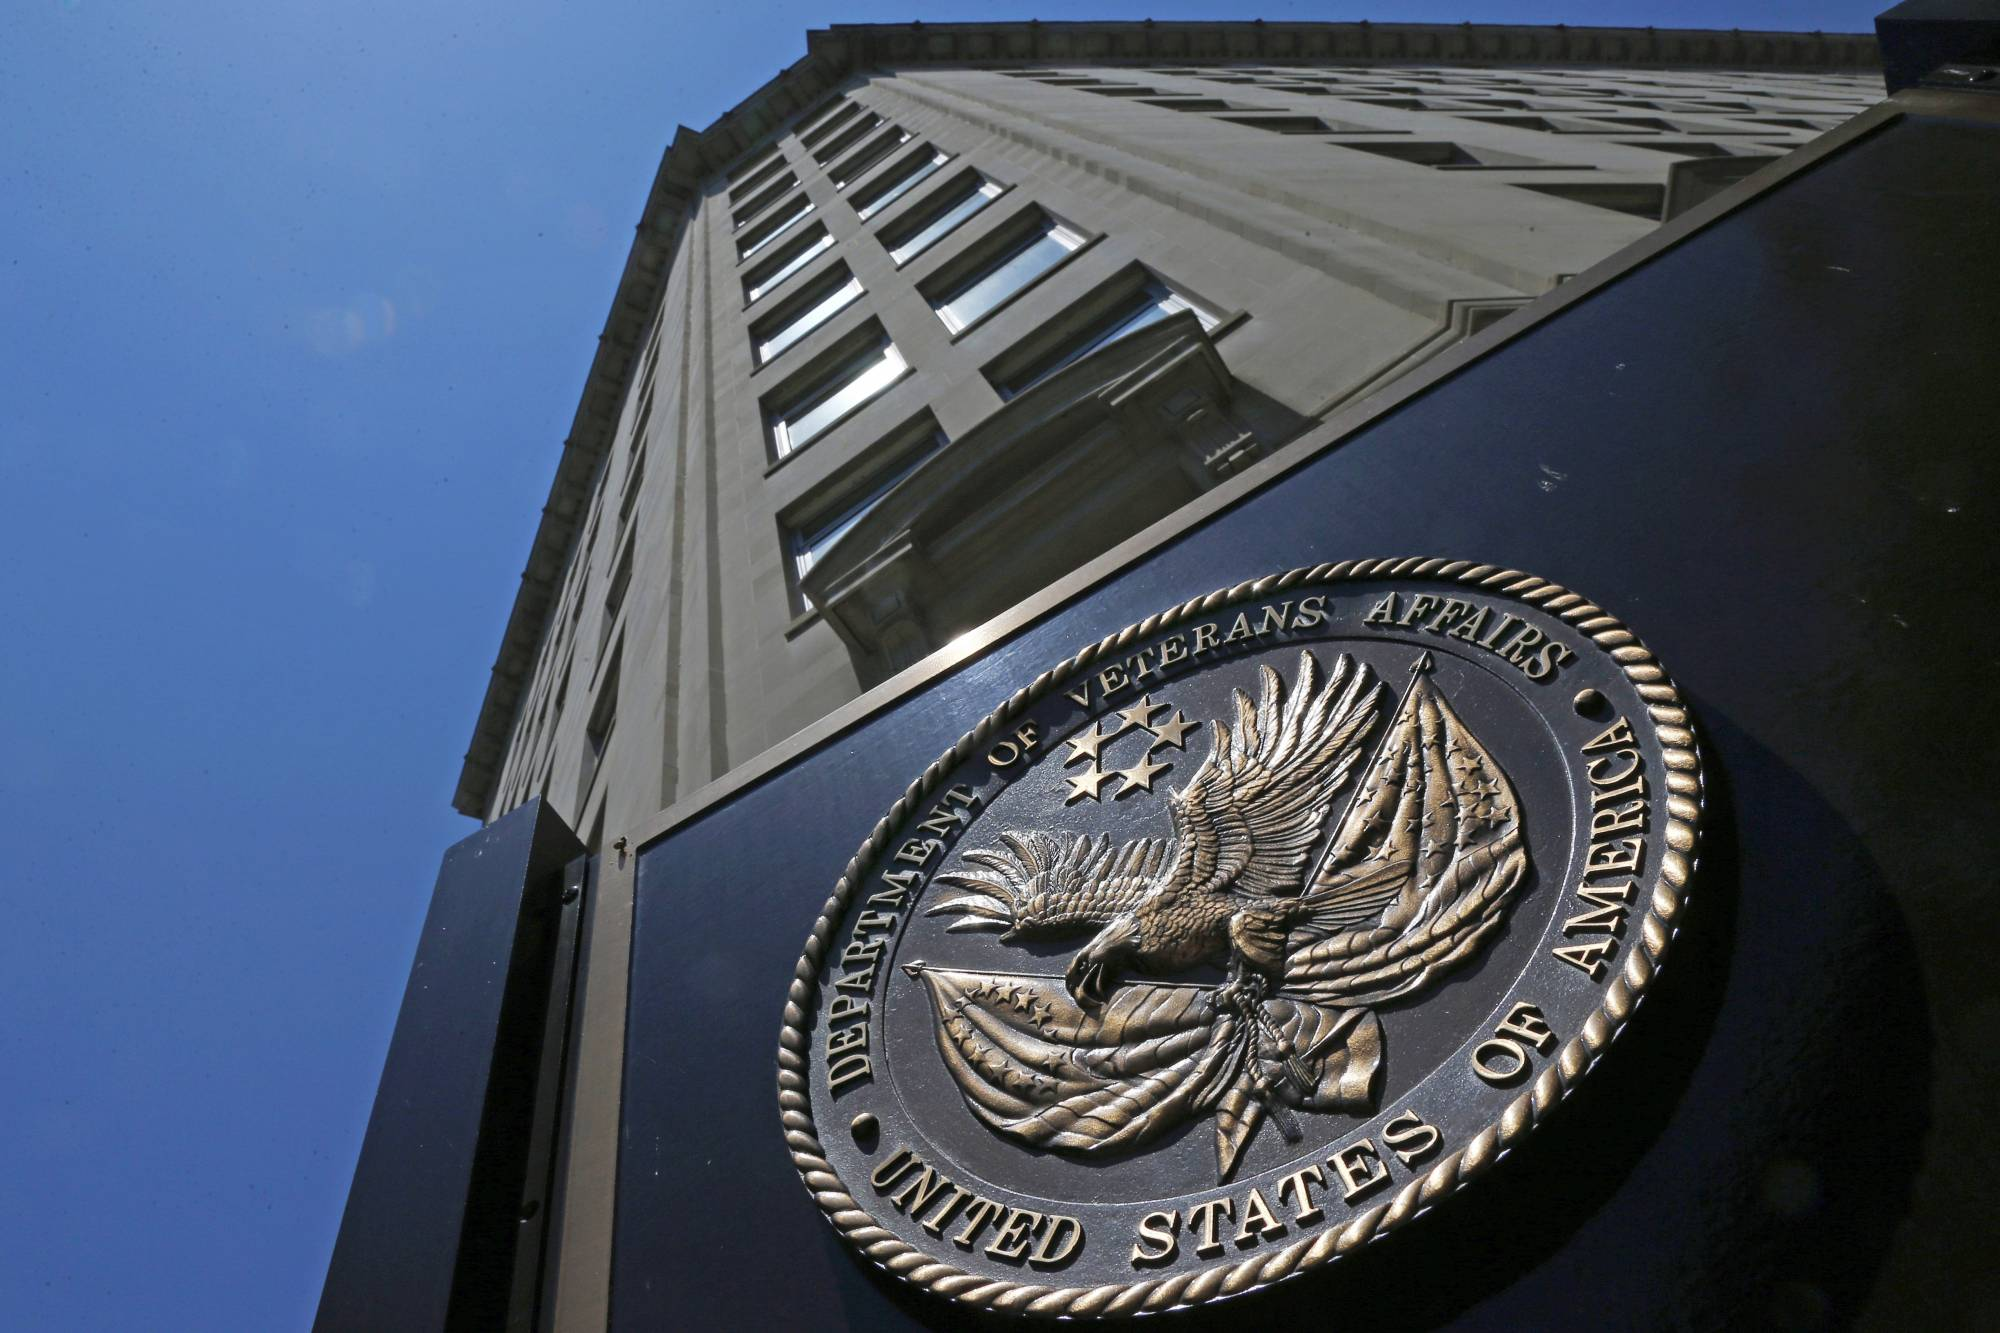 FILE - In this June 21, 2013 file photo, the Veterans Affairs Department in Washington. Federal authorities have launched dozens of new criminal investigations into possible opioid and other drug theft by employees at Department of Veterans Affairs hospitals, a sign the problem isn't going away despite new prevention efforts. Data obtained by The Associated Press show 36 cases opened by the VA inspector general's office from Oct. 1 through May 19. (AP Photo/Charles Dharapak, File)